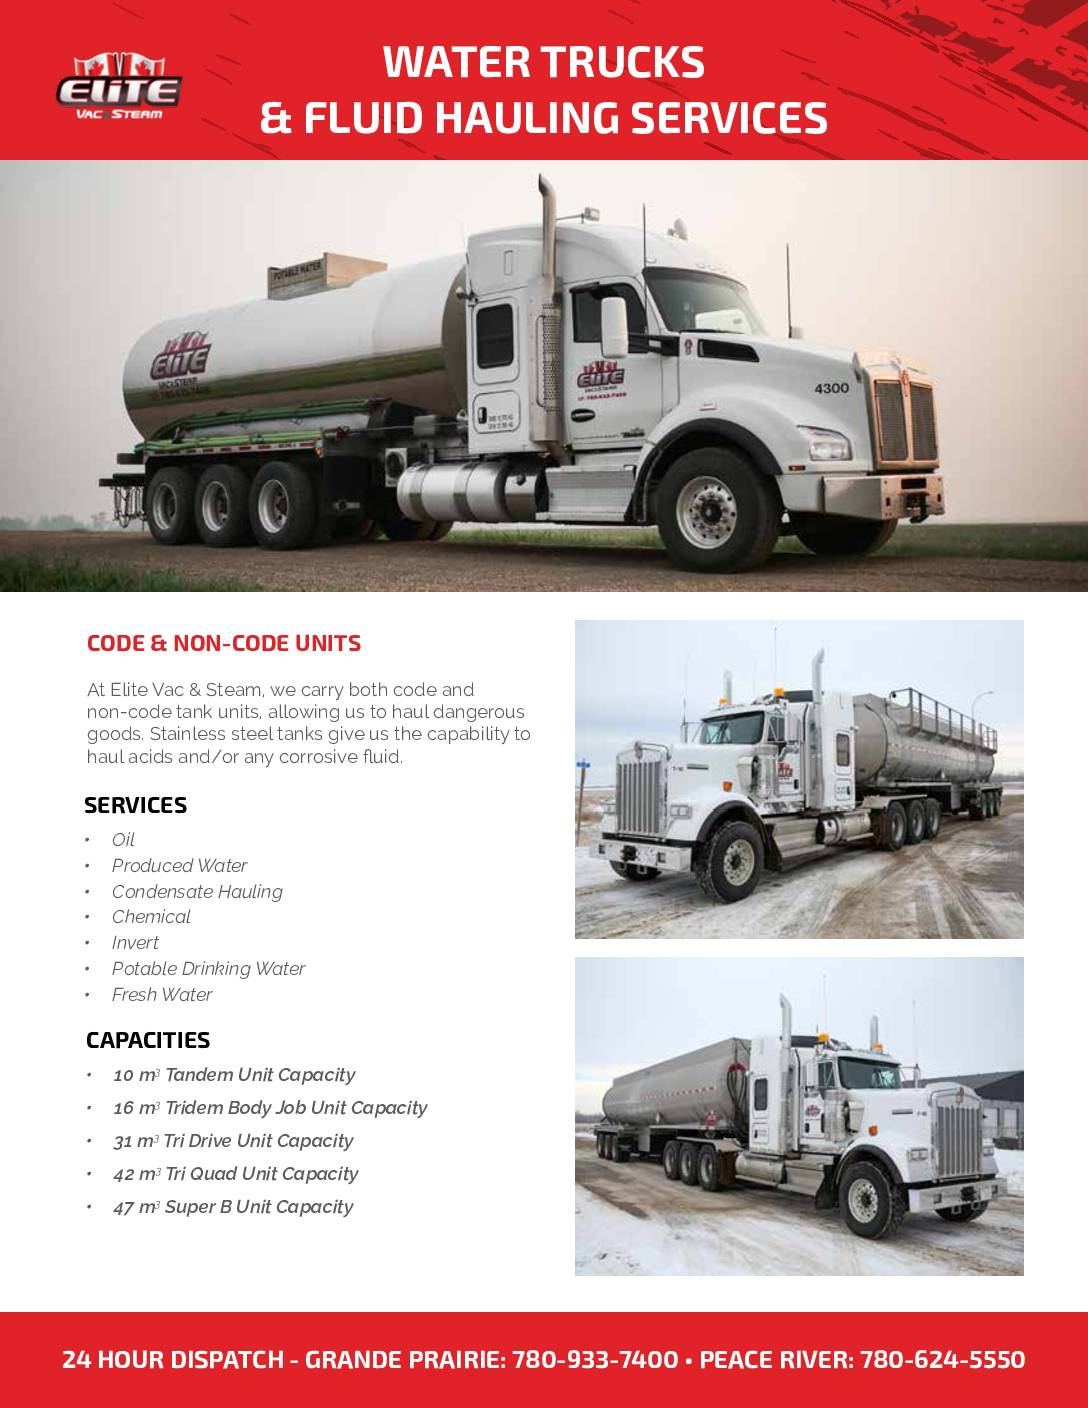 Elite – Water Trucks & Fluid Hauling Services